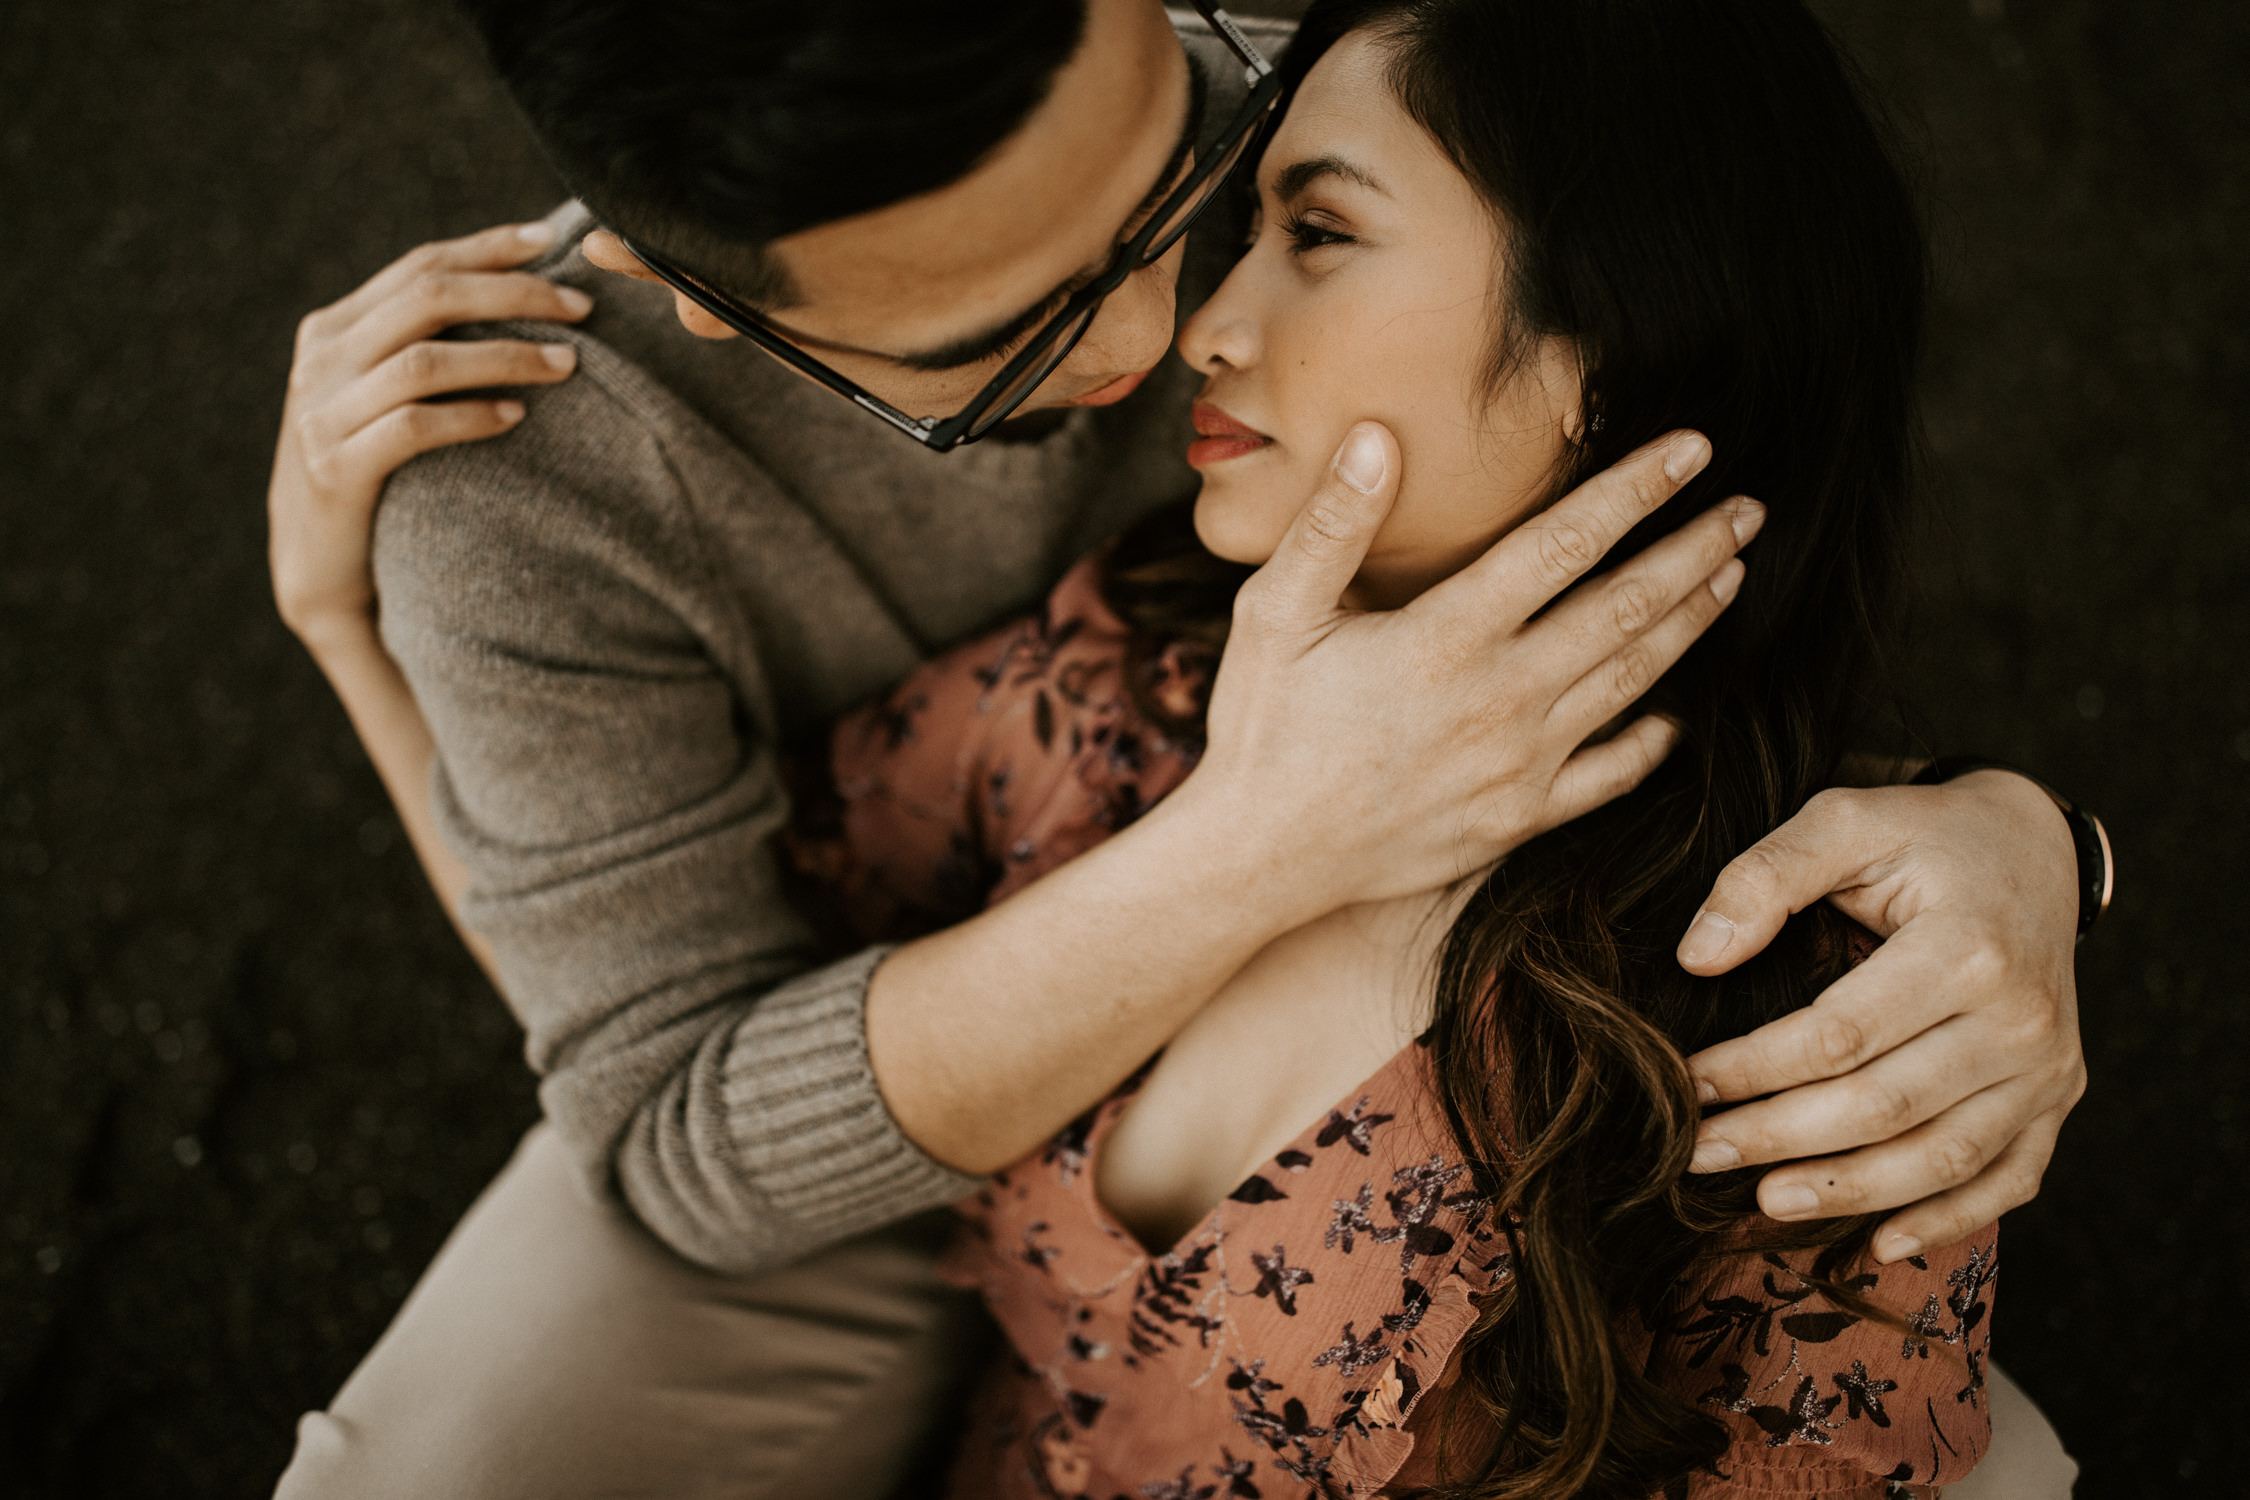 couple-intimate-engagement-session-northern-california-69.jpg